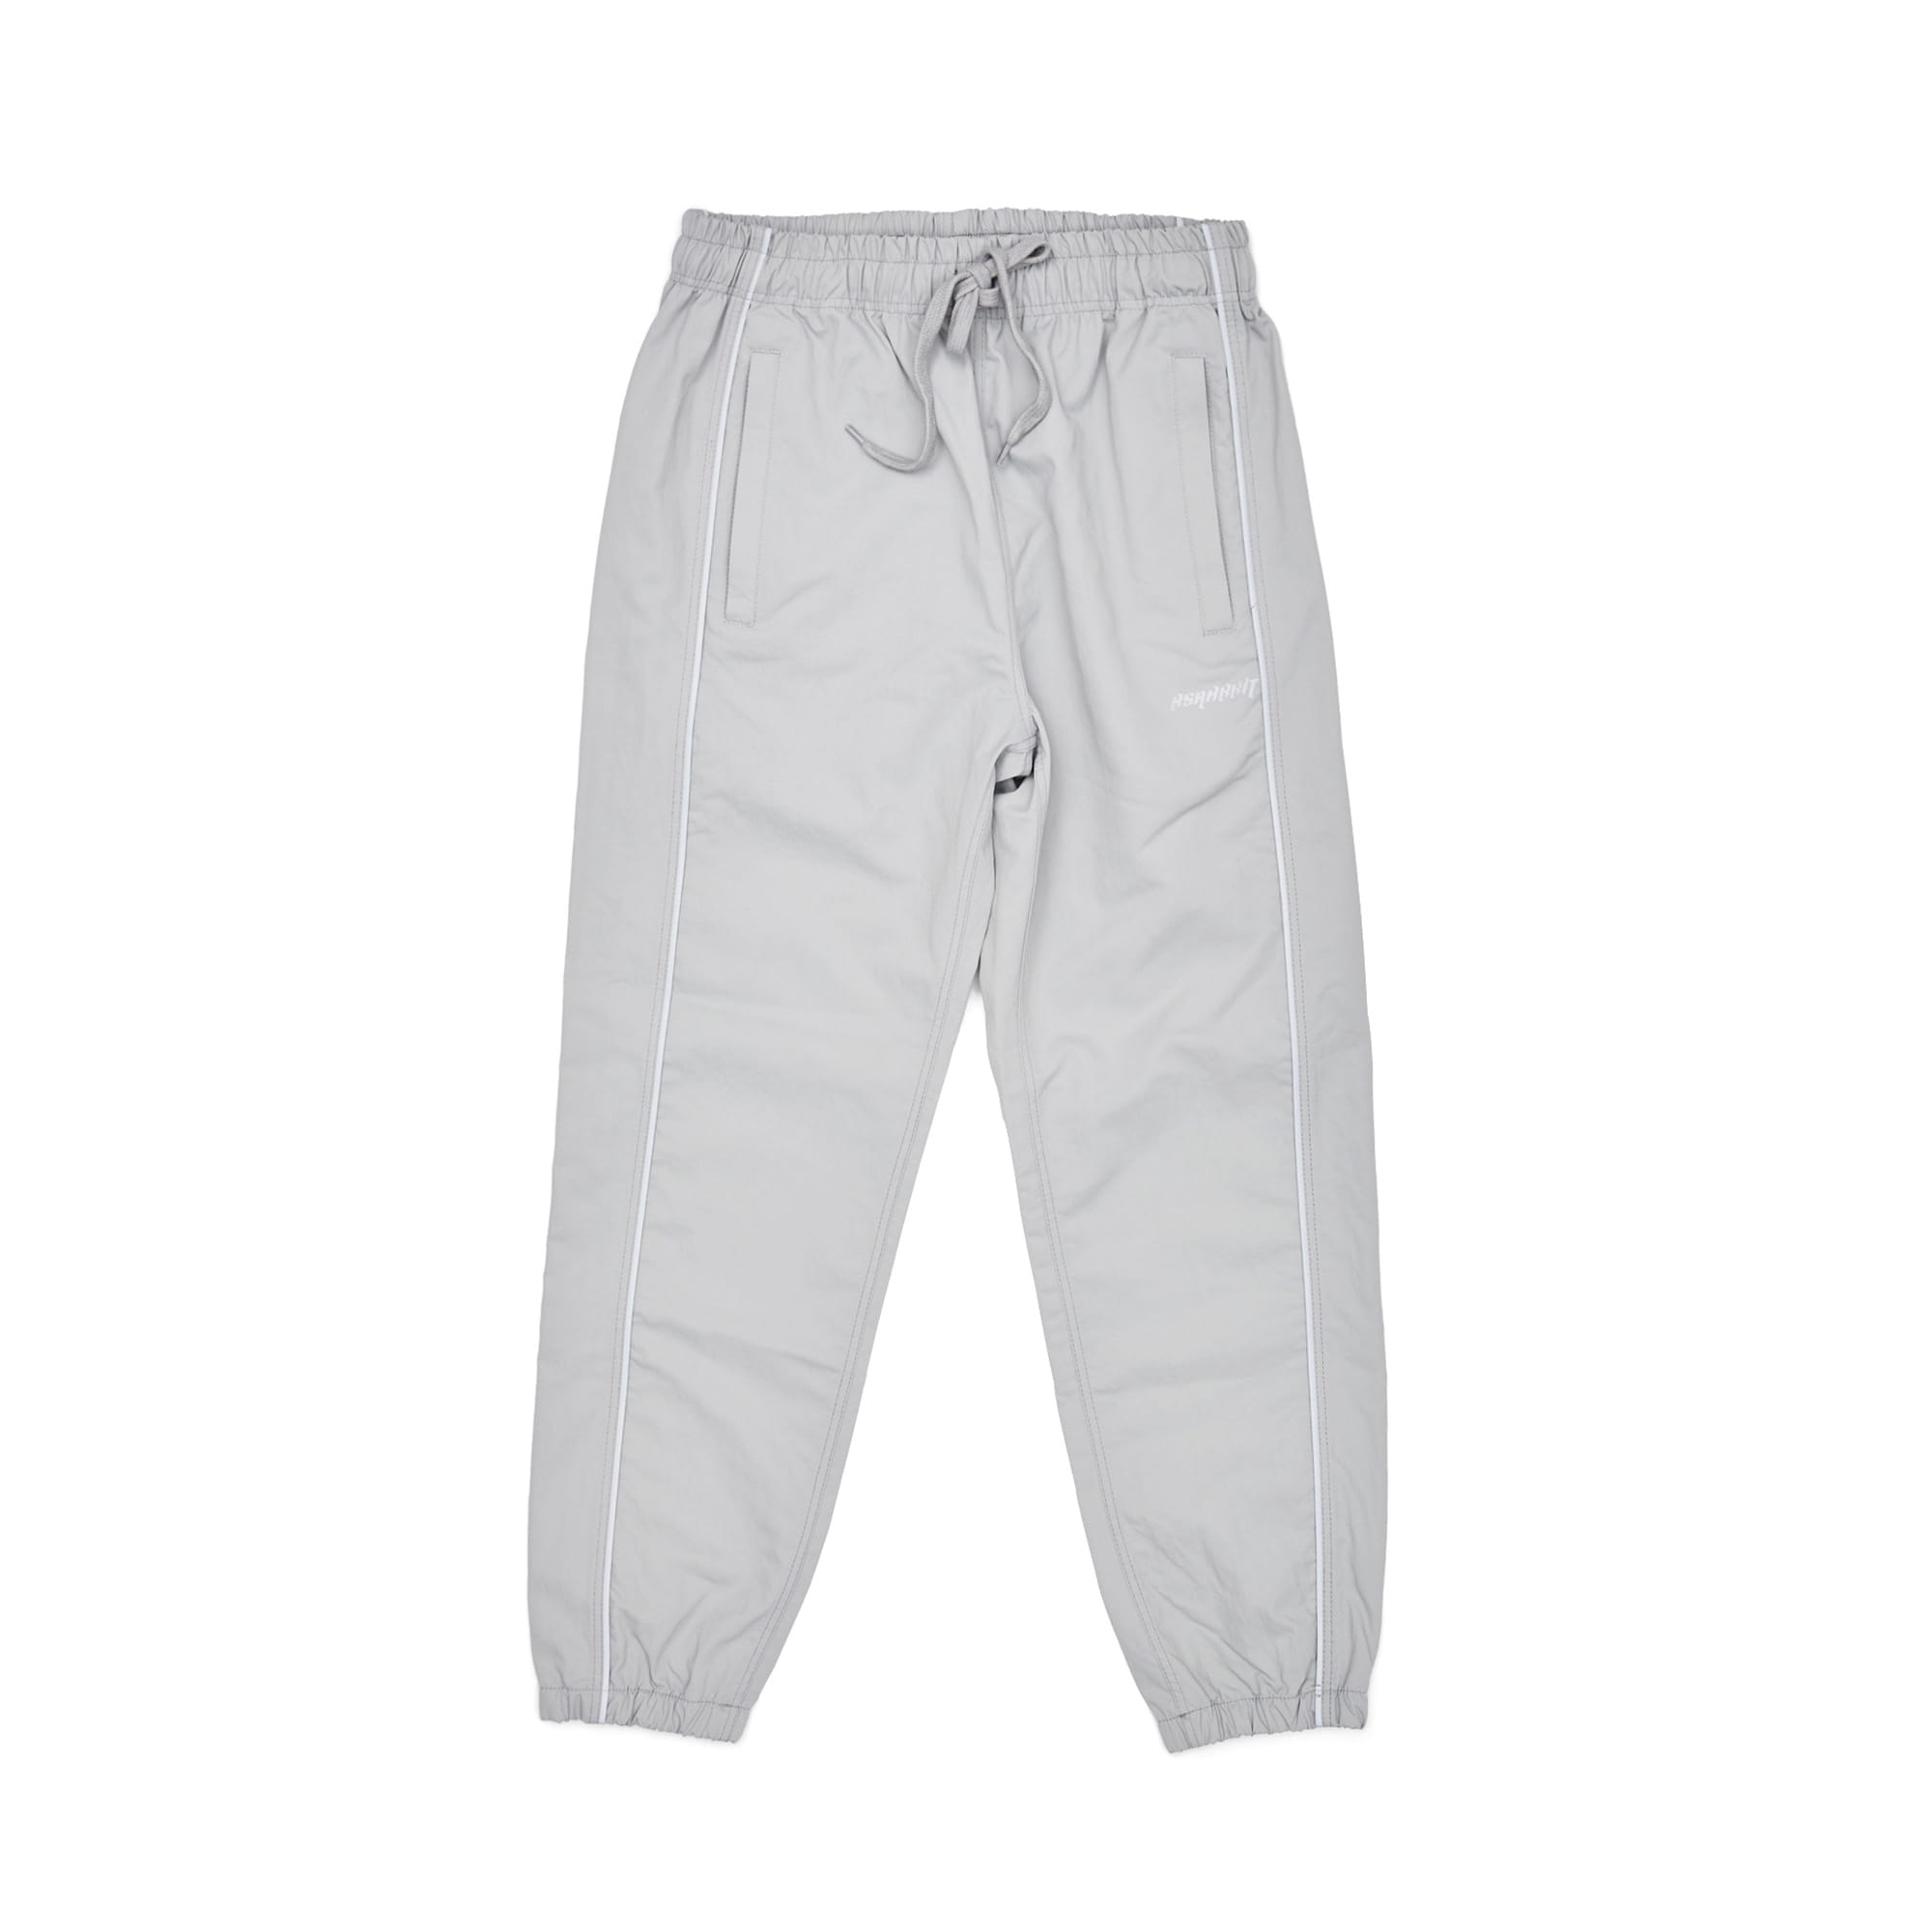 BSRABBIT BSR WASHING TWILL JOGGER PANTS GRAY